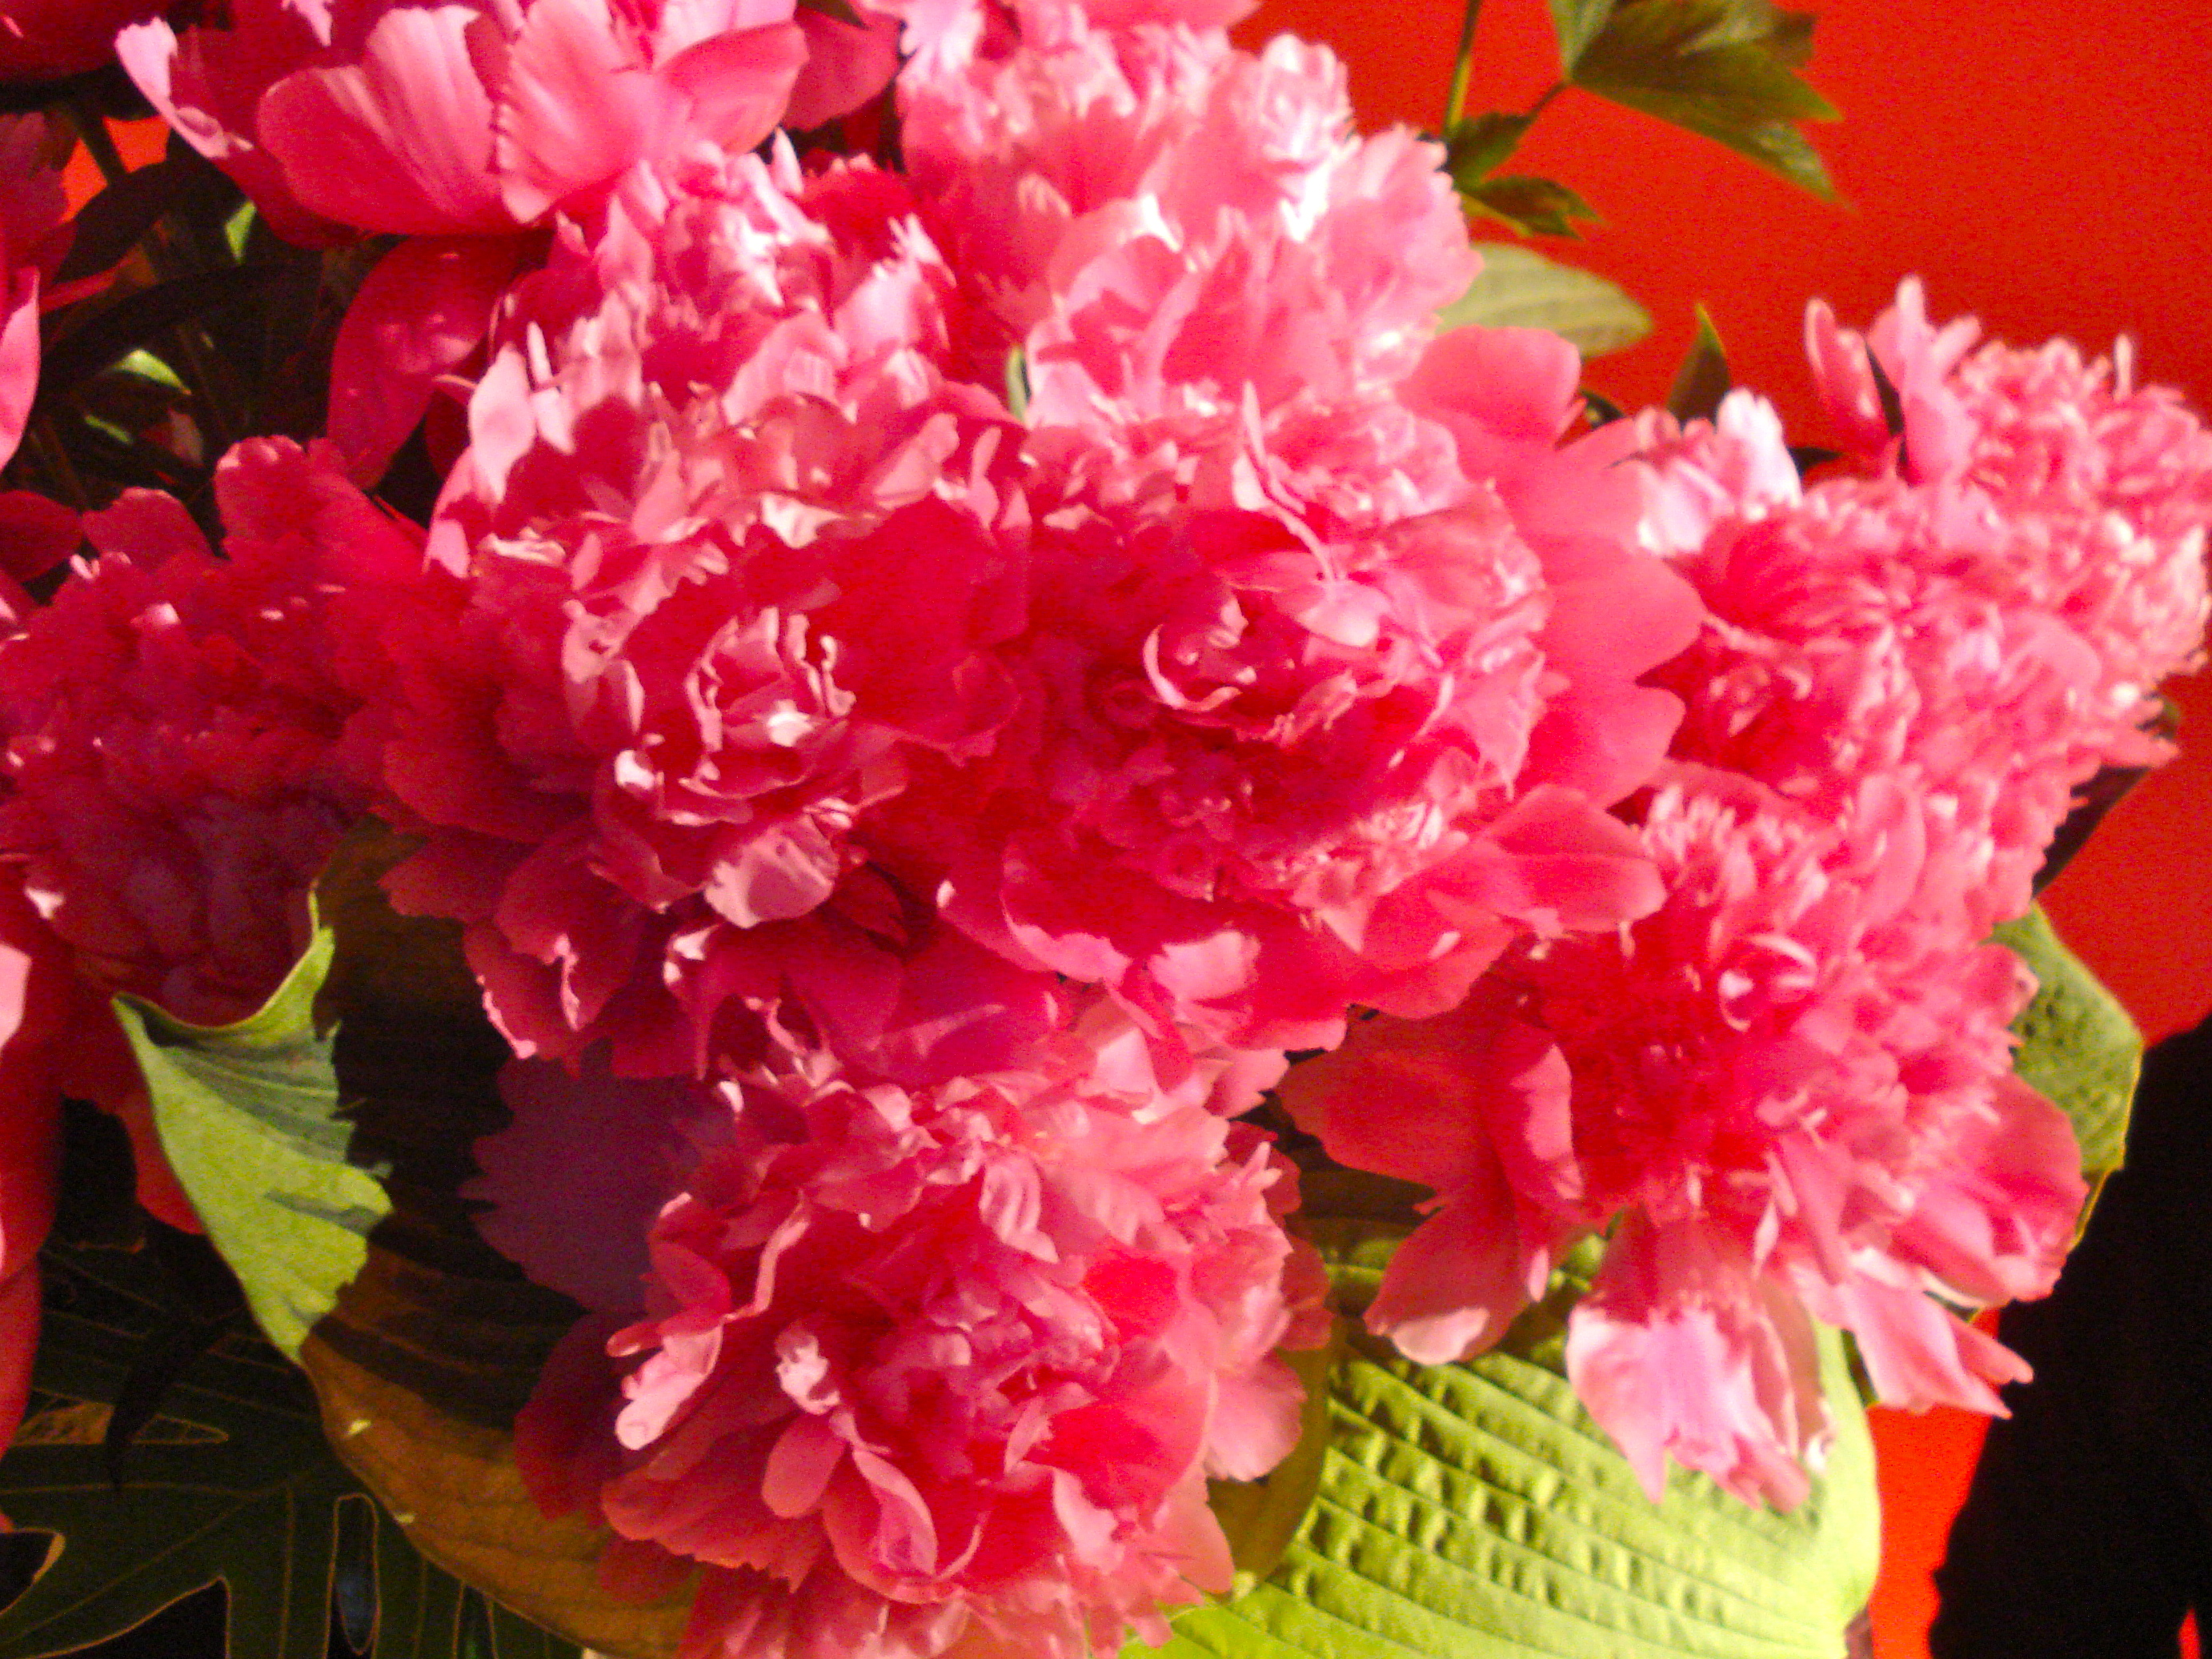 Extremely pink flowers.